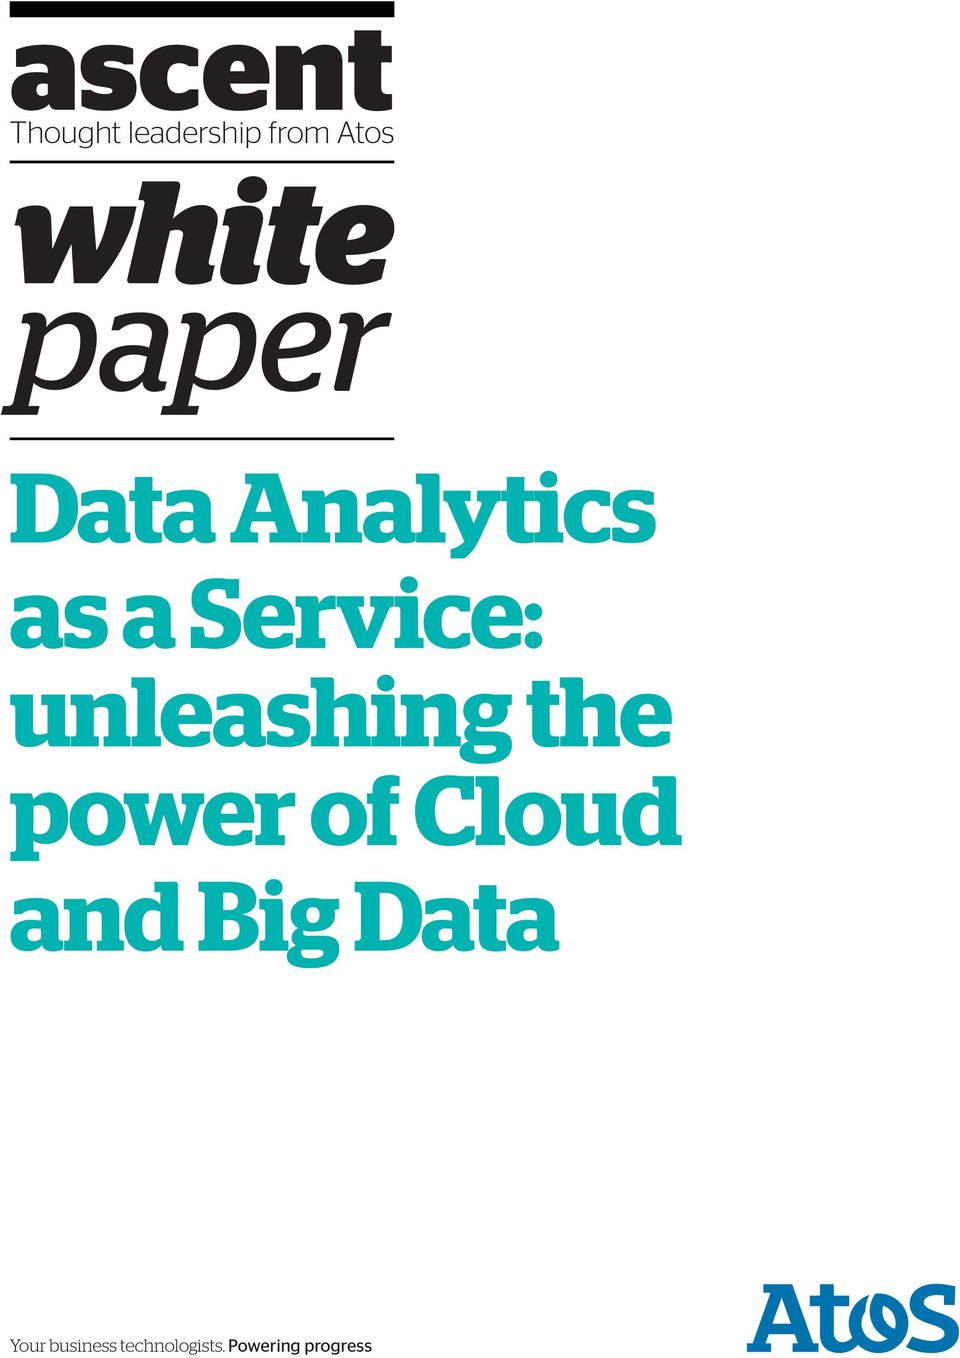 unleashing the power of Cloud and Big